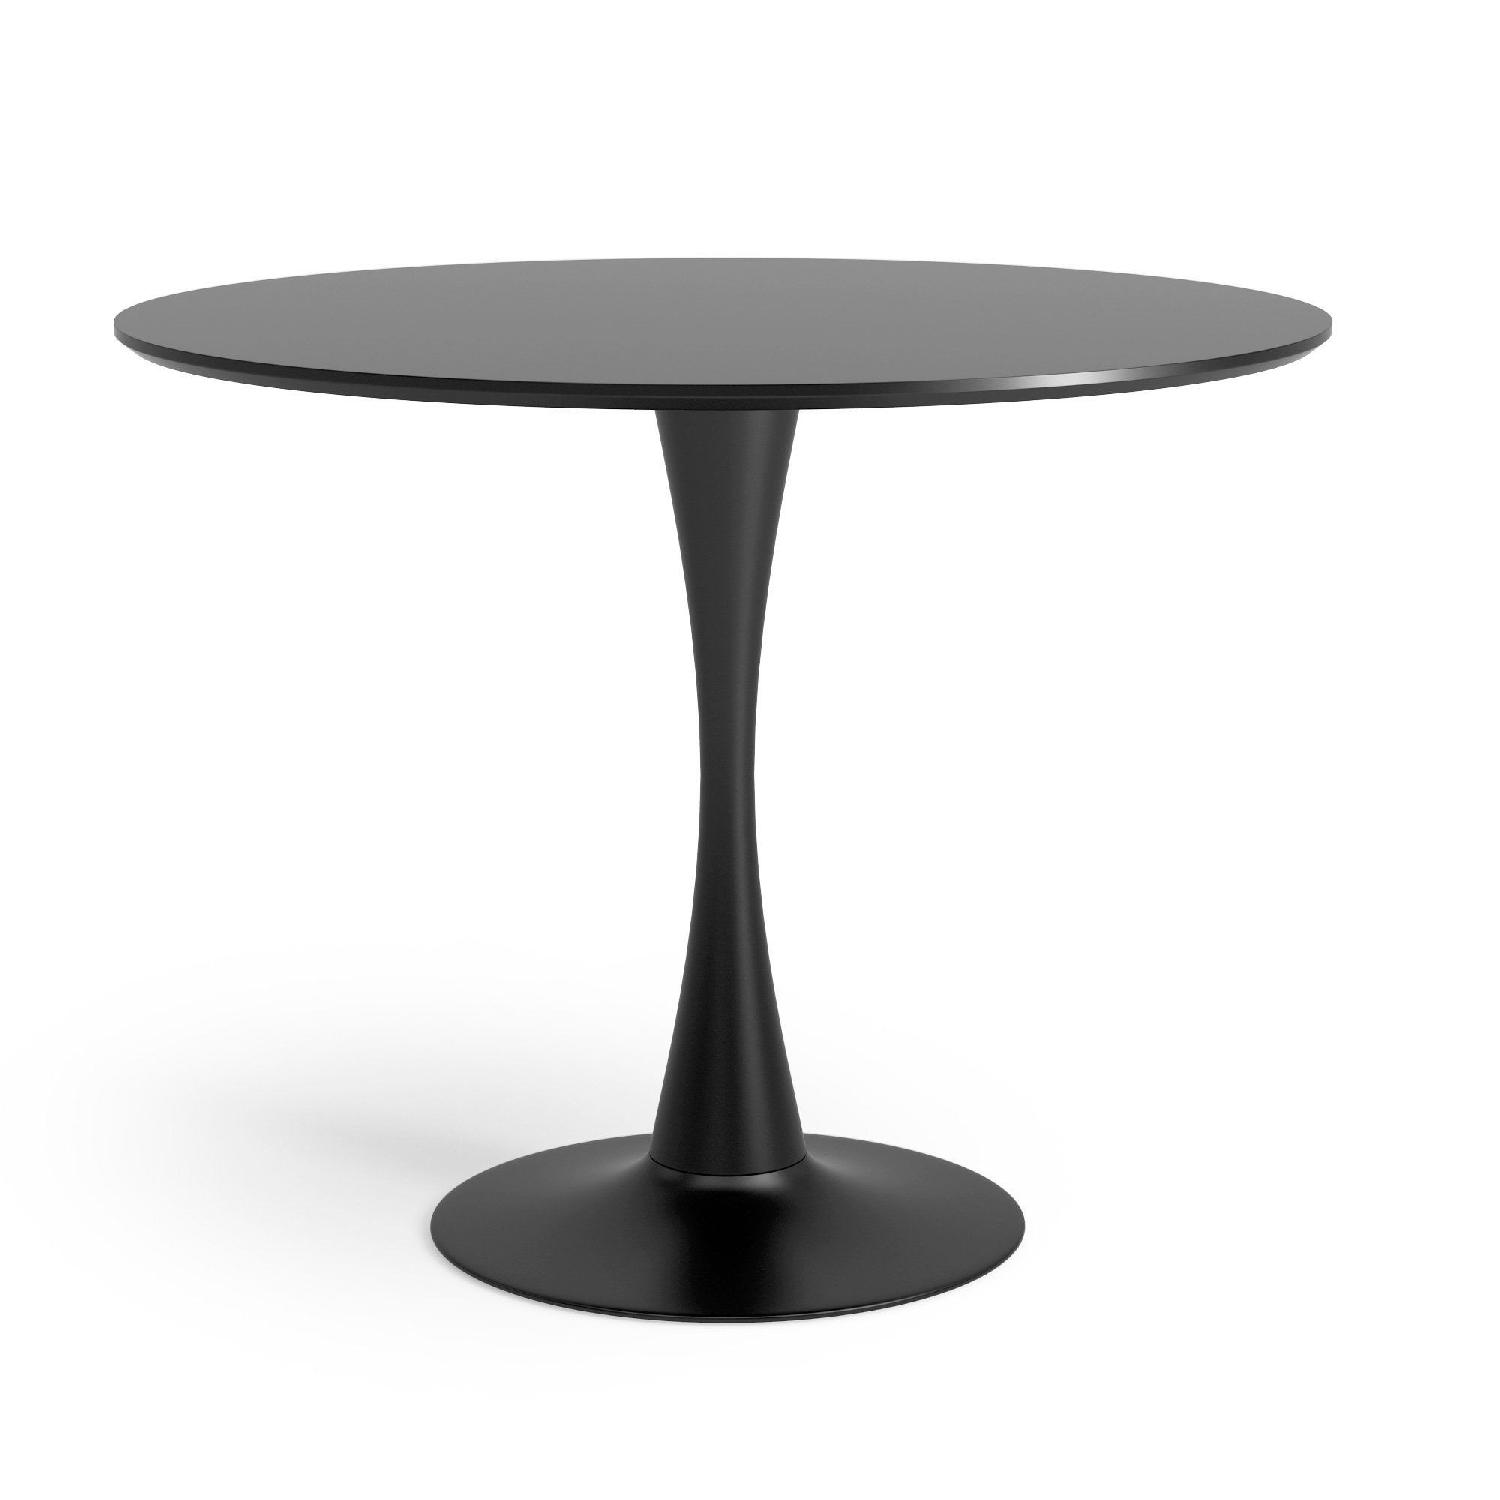 George Oliver Mid Century Modern Black Round Dining Table ...